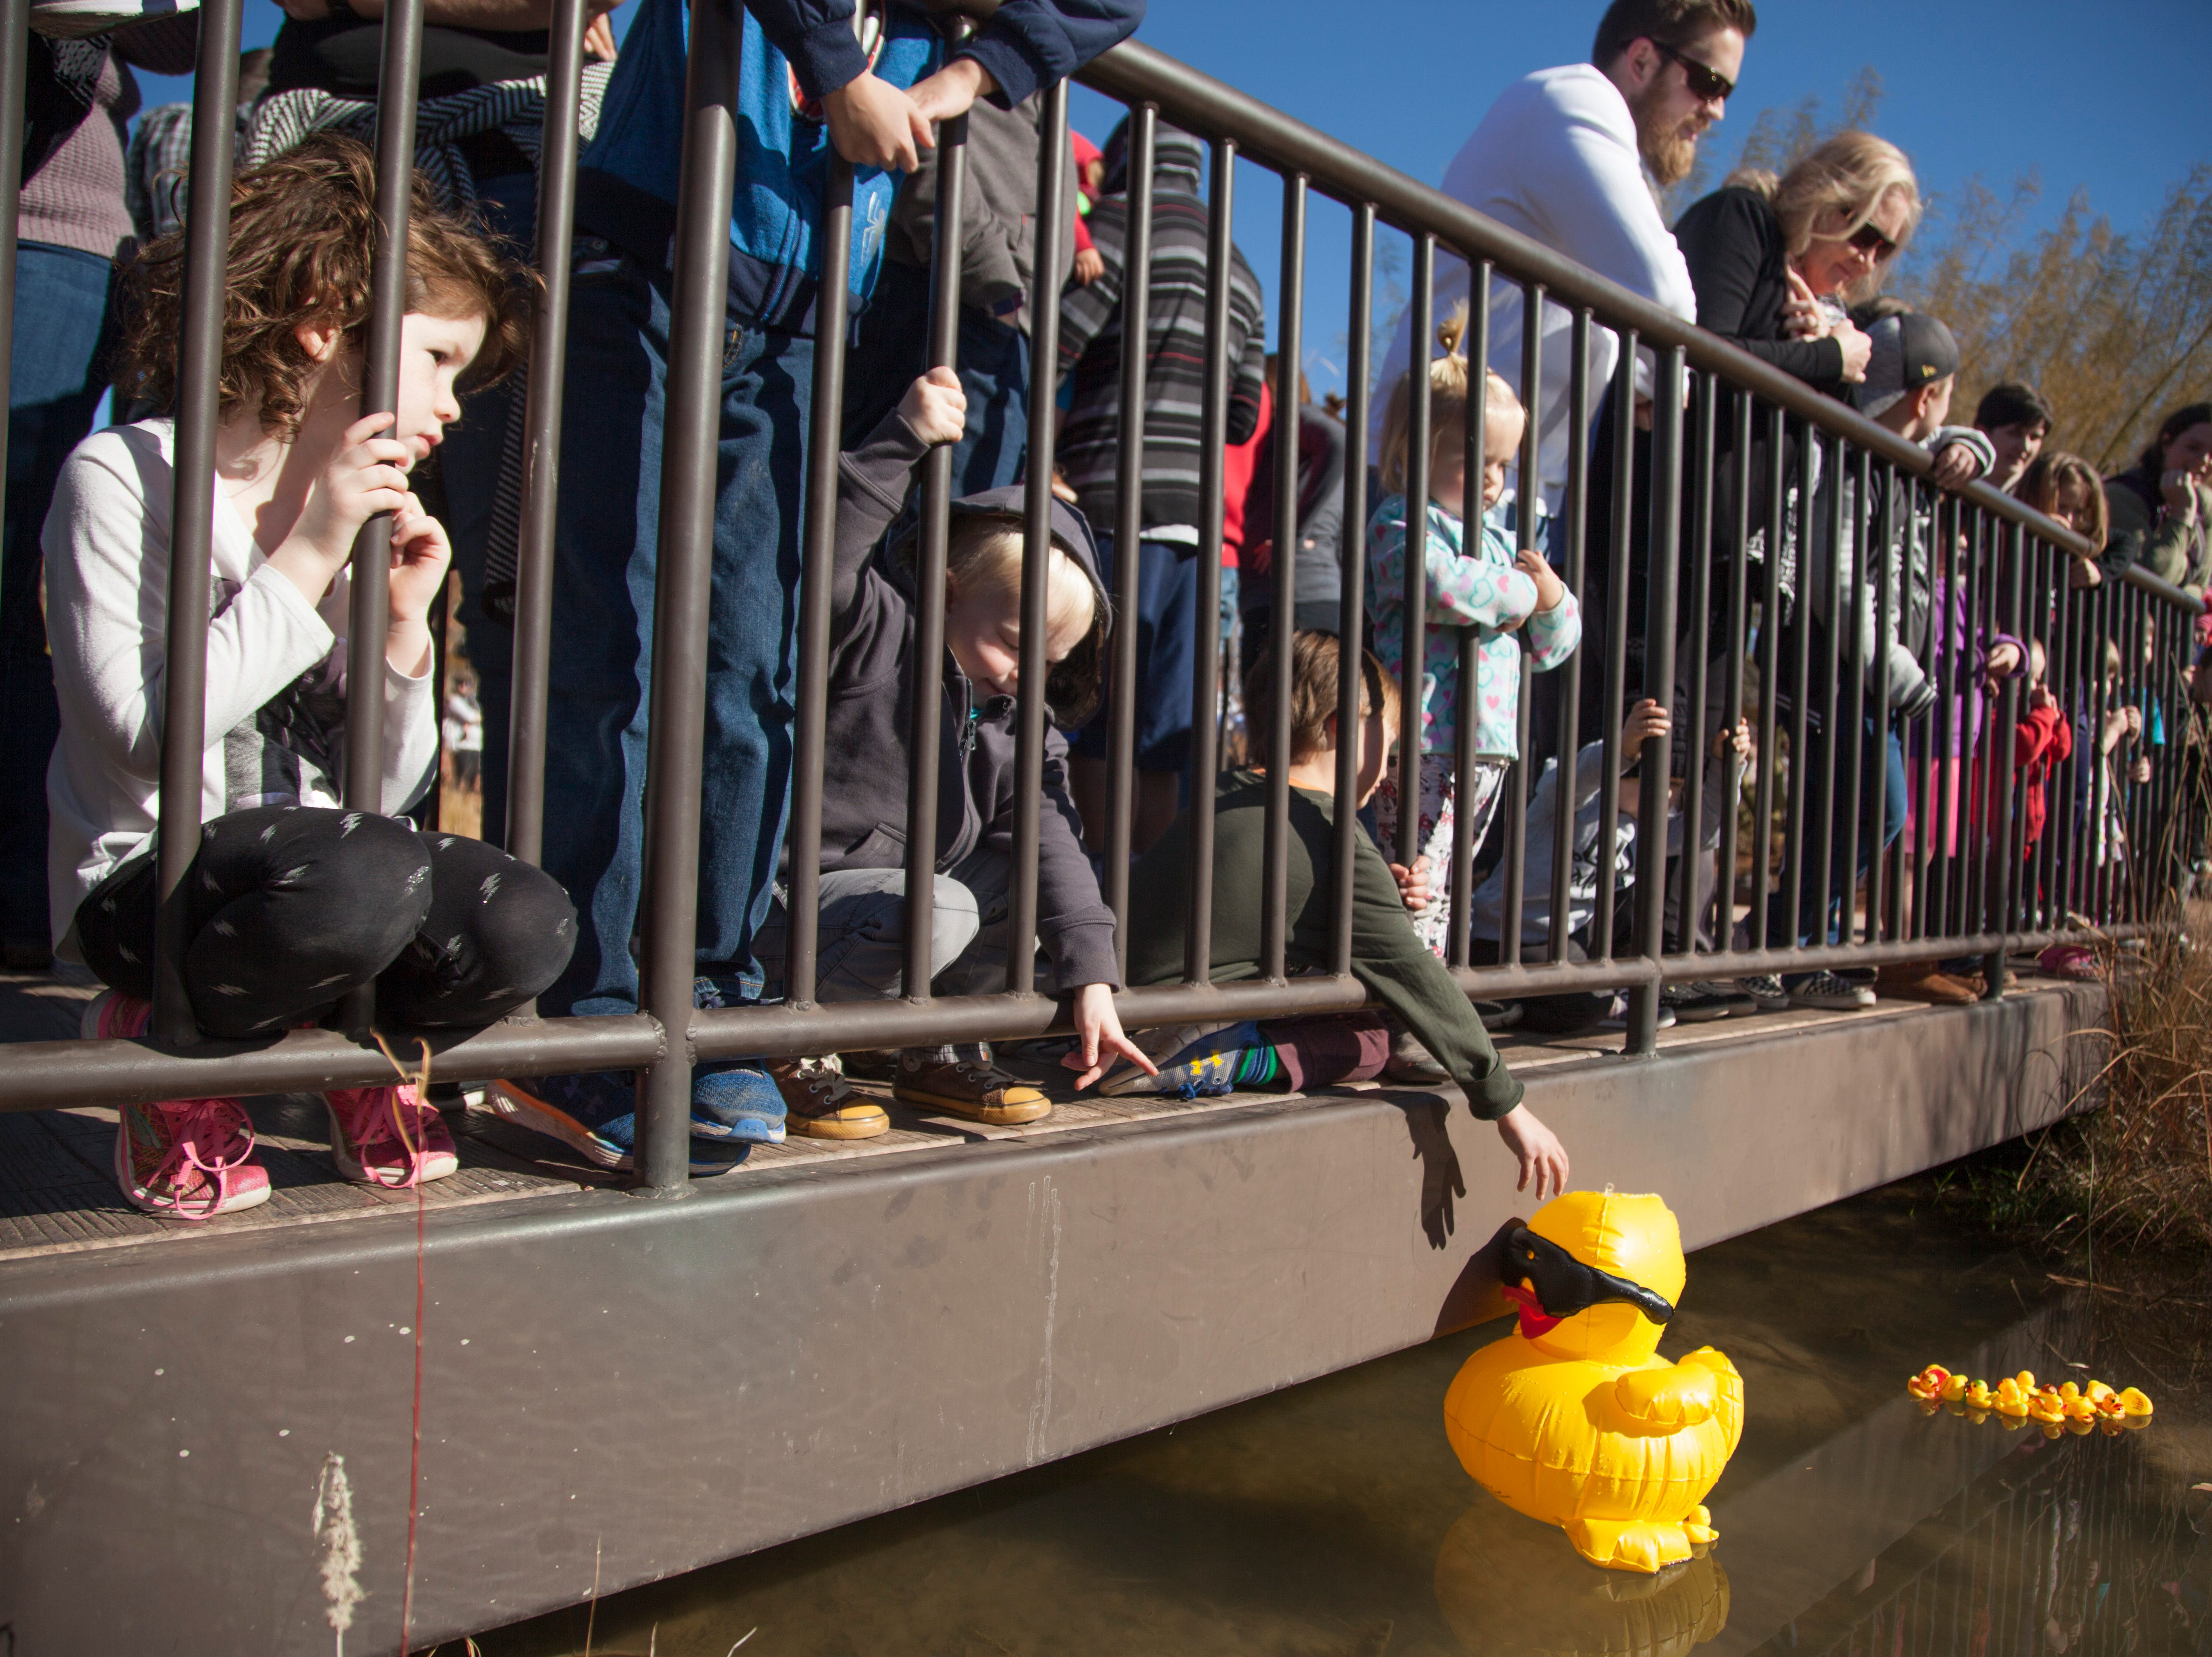 Local children decorate and race rubber ducks at the Red Hills Desert Garden Saturday, Jan. 12, 2019.